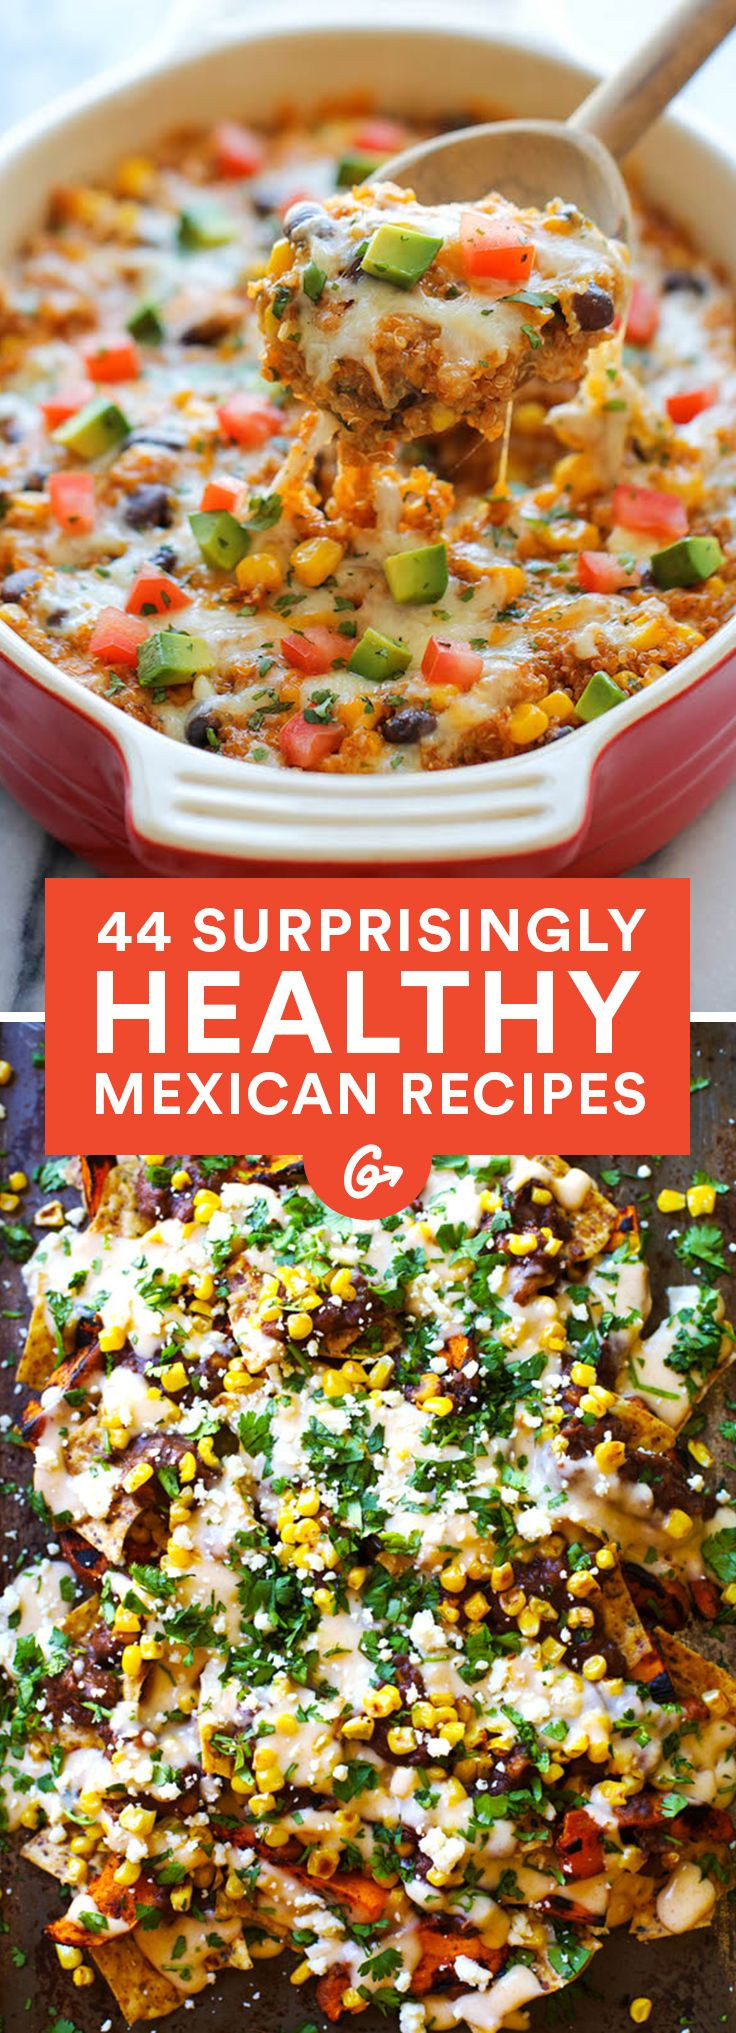 Mexican Healthy Recipes  Best 25 Healthy mexican recipes ideas on Pinterest